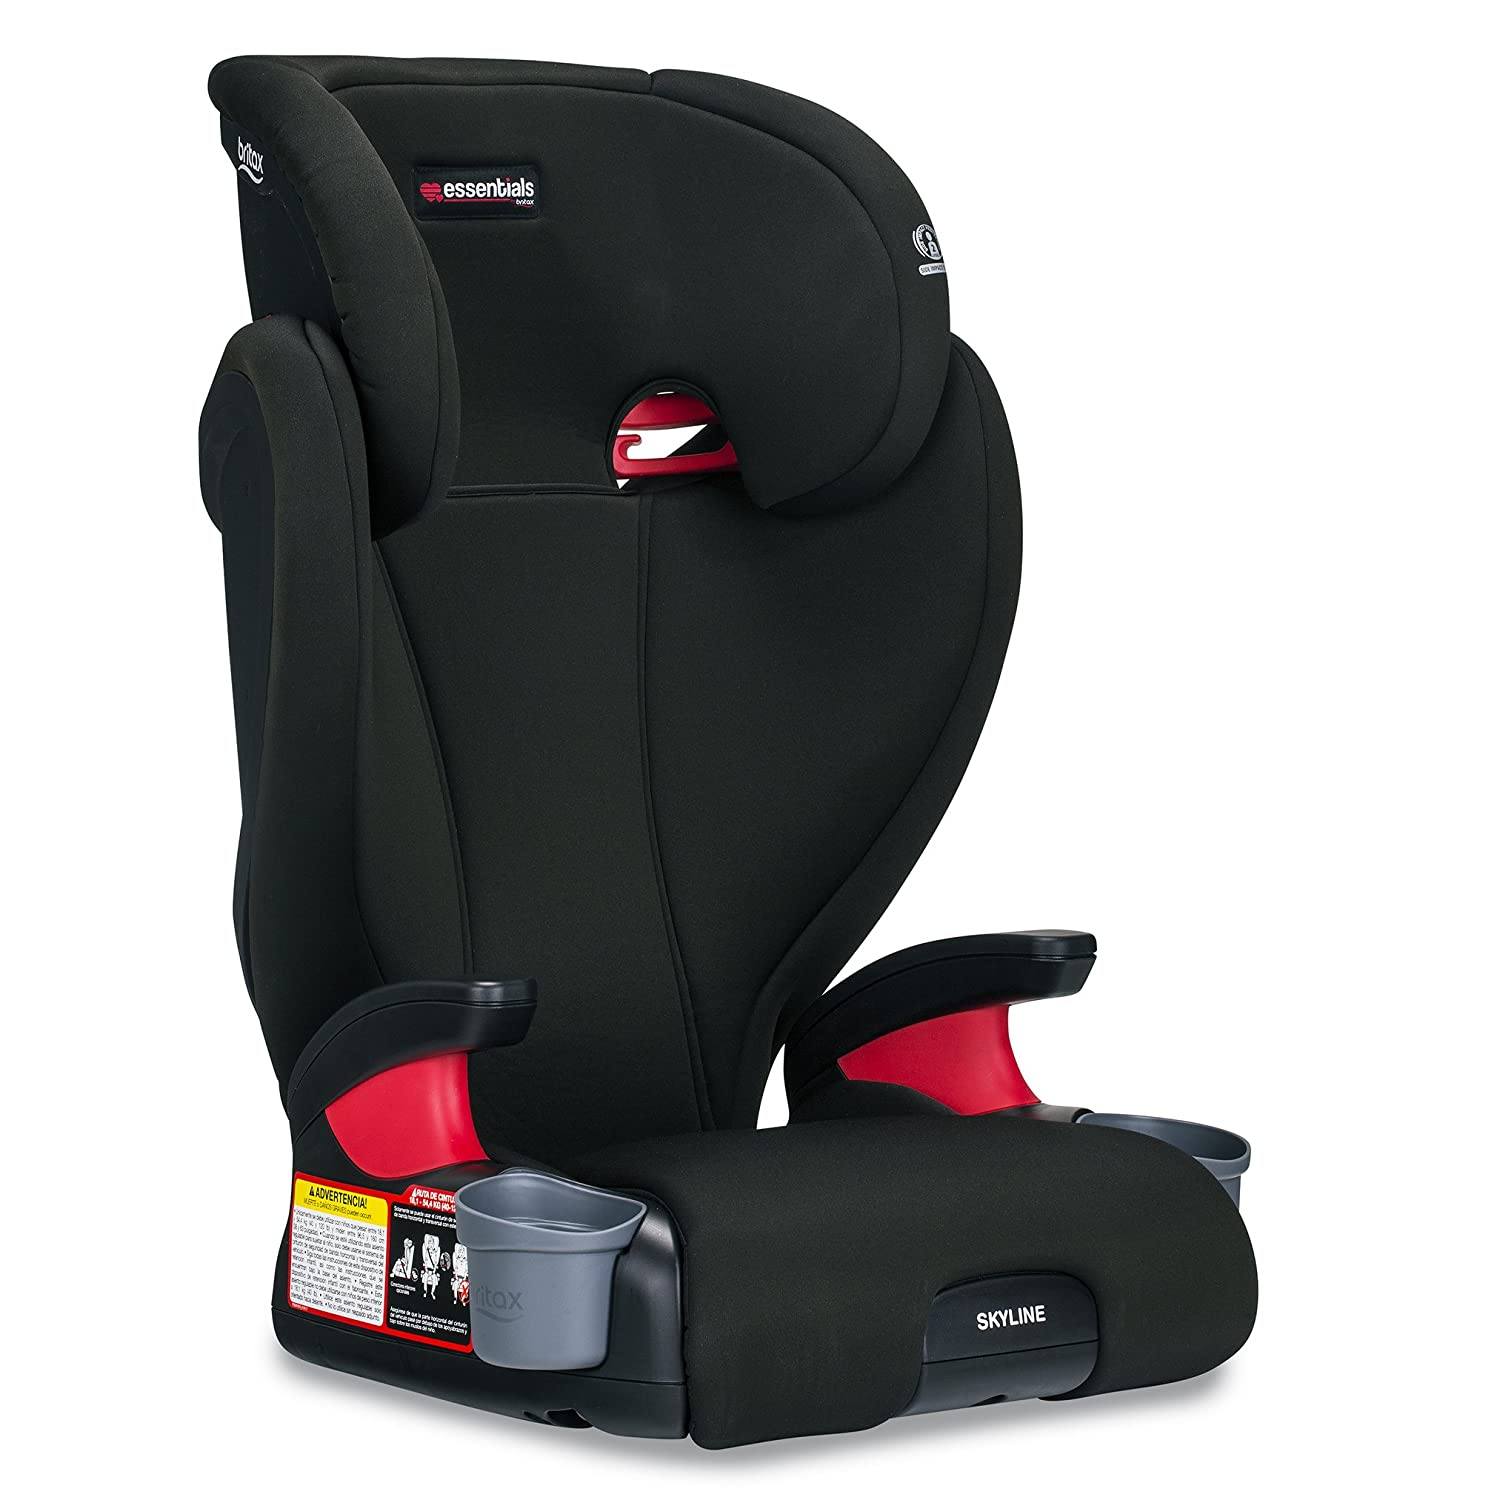 Essentials by Britax Skyline Belt-Positioning Booster Seat, Dusk E1A639H